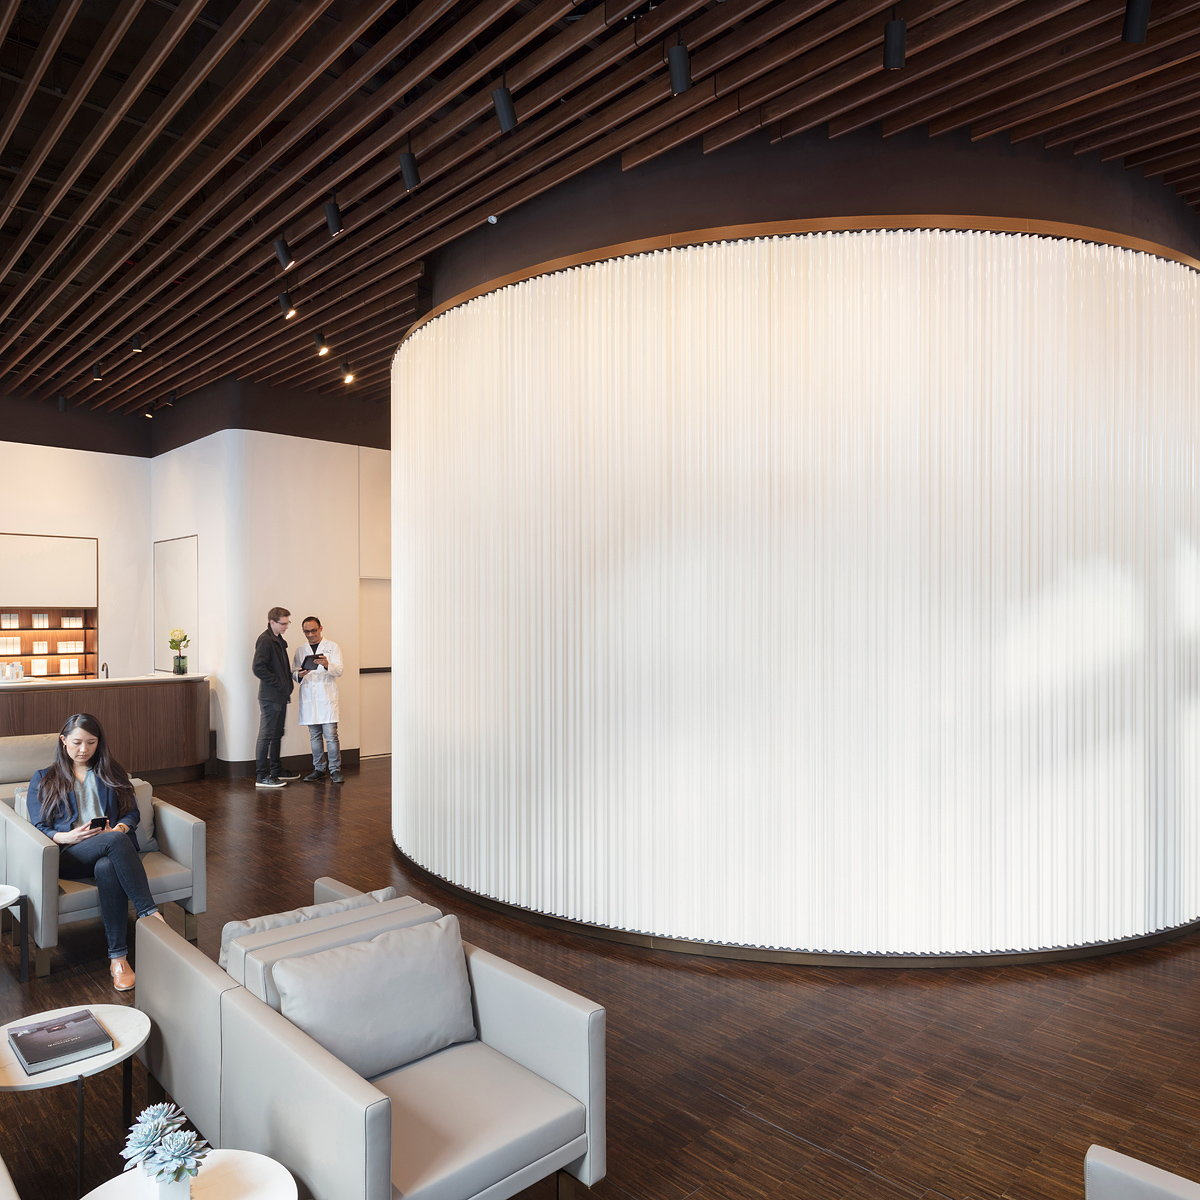 Brandon Haw Architecture Designs Bespoke New Flagship for NYDG Integral Health and Wellness